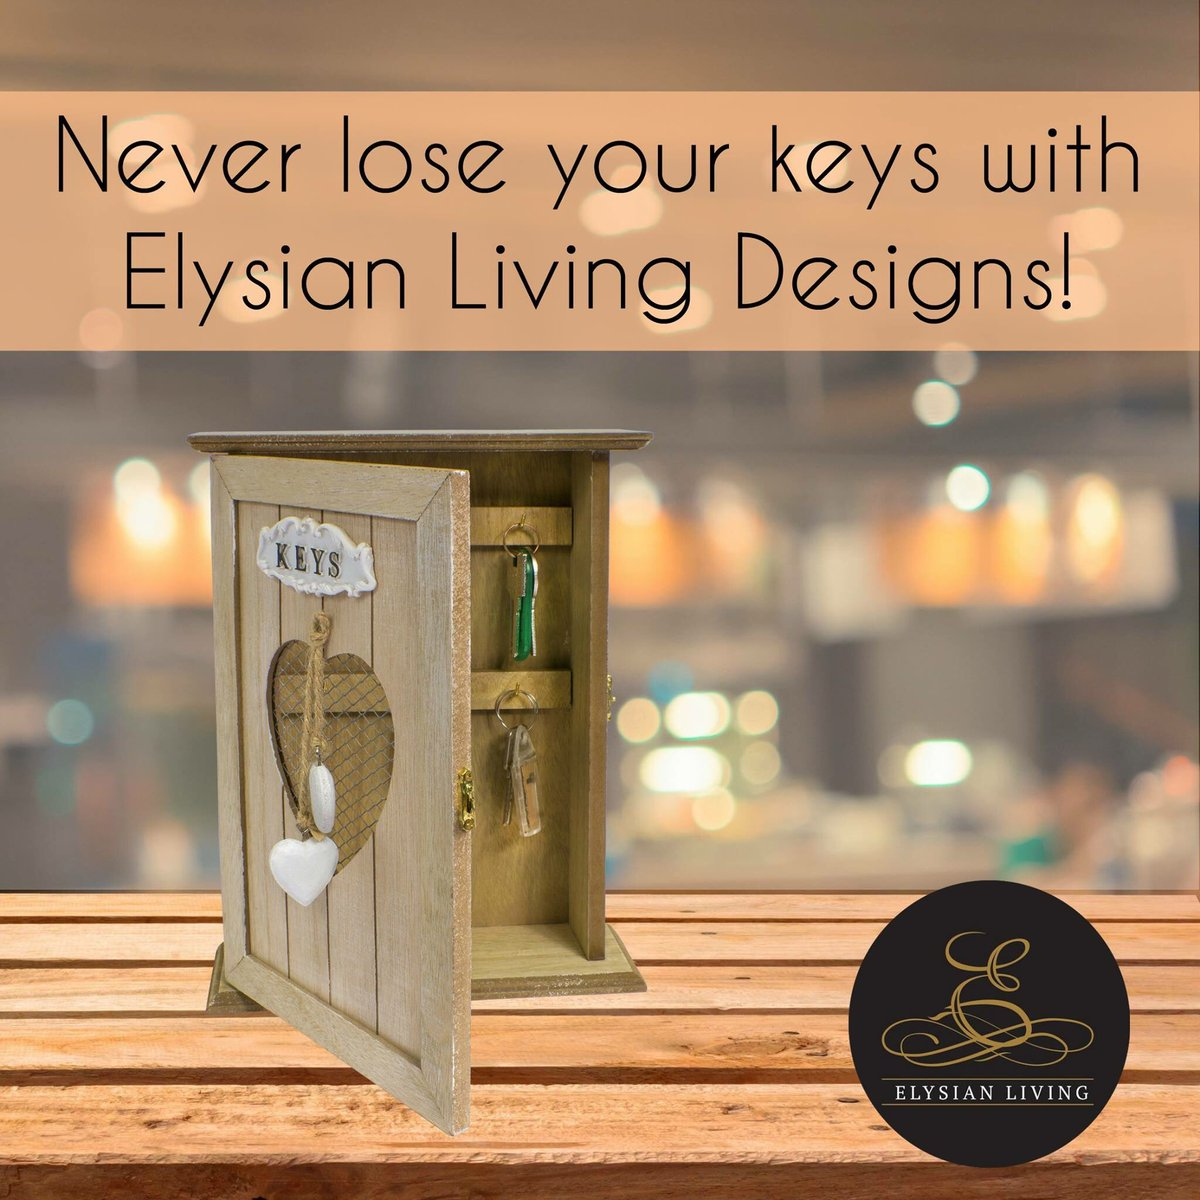 You don&#39;t have to worry about losing your keys anymore!  #Kenya #Nairobi #Africa #Shopping #HomeDecor #Designs #Popular #Online<br>http://pic.twitter.com/SBy7NnOXWS